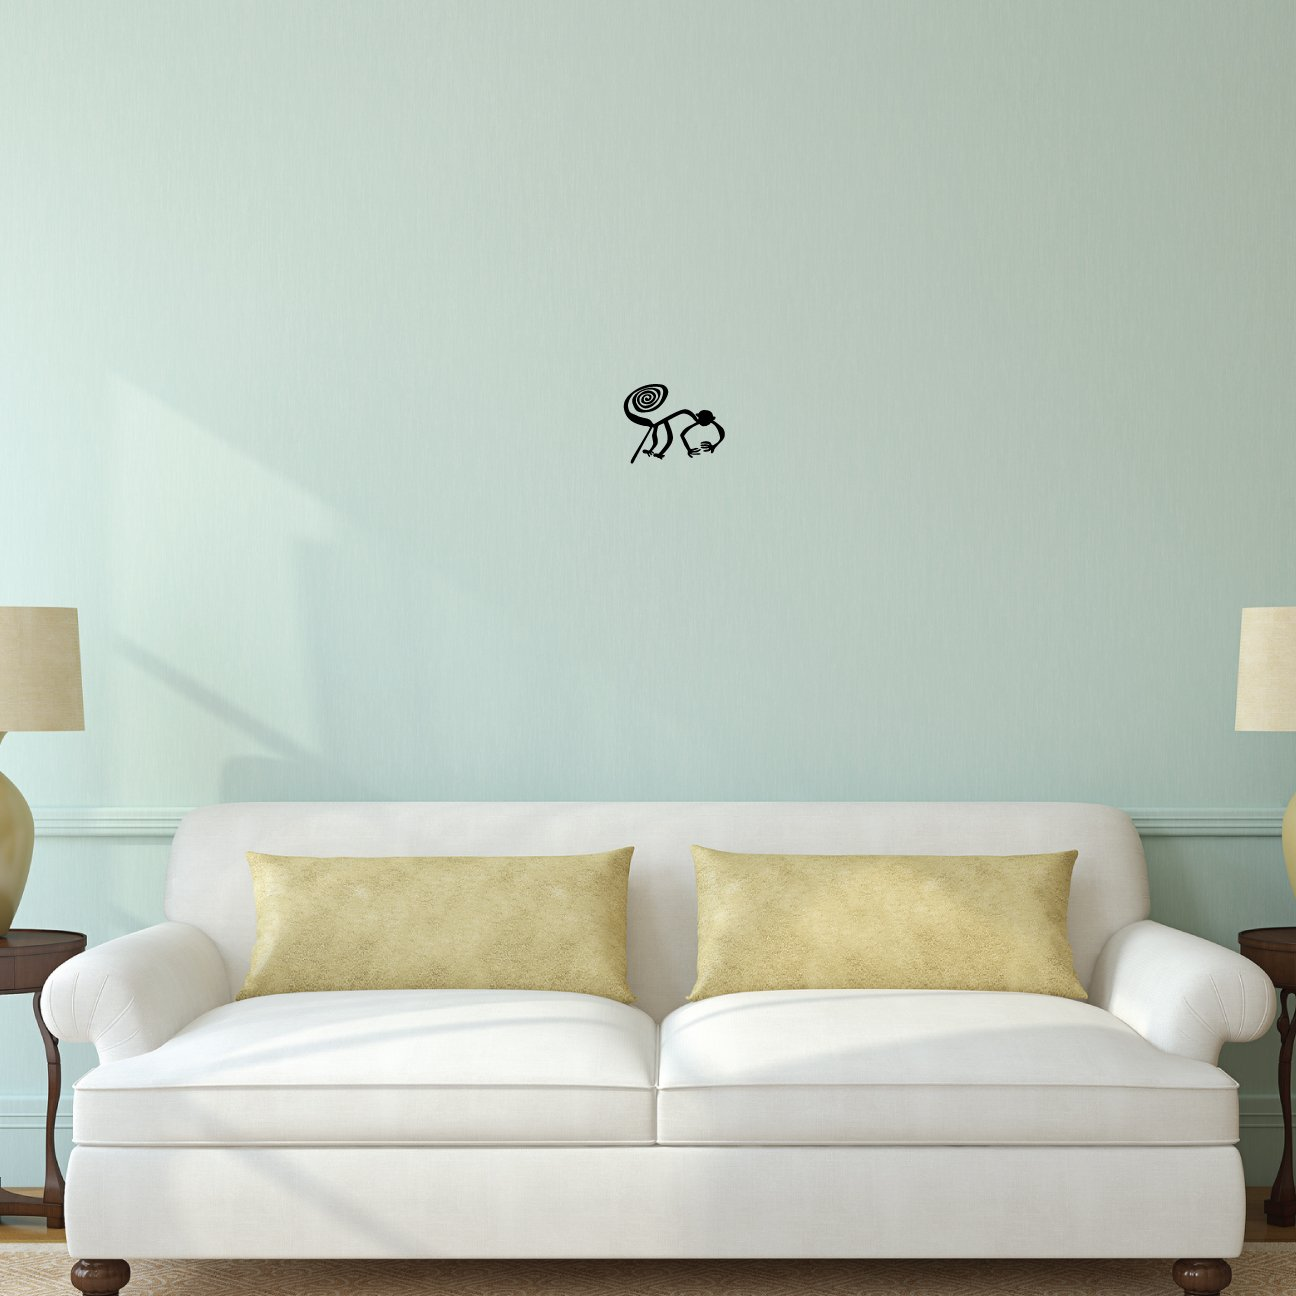 Amazoncom Nazca Lines Monkey Wall Decal Sticker Decal - Vinyl decals for the wall